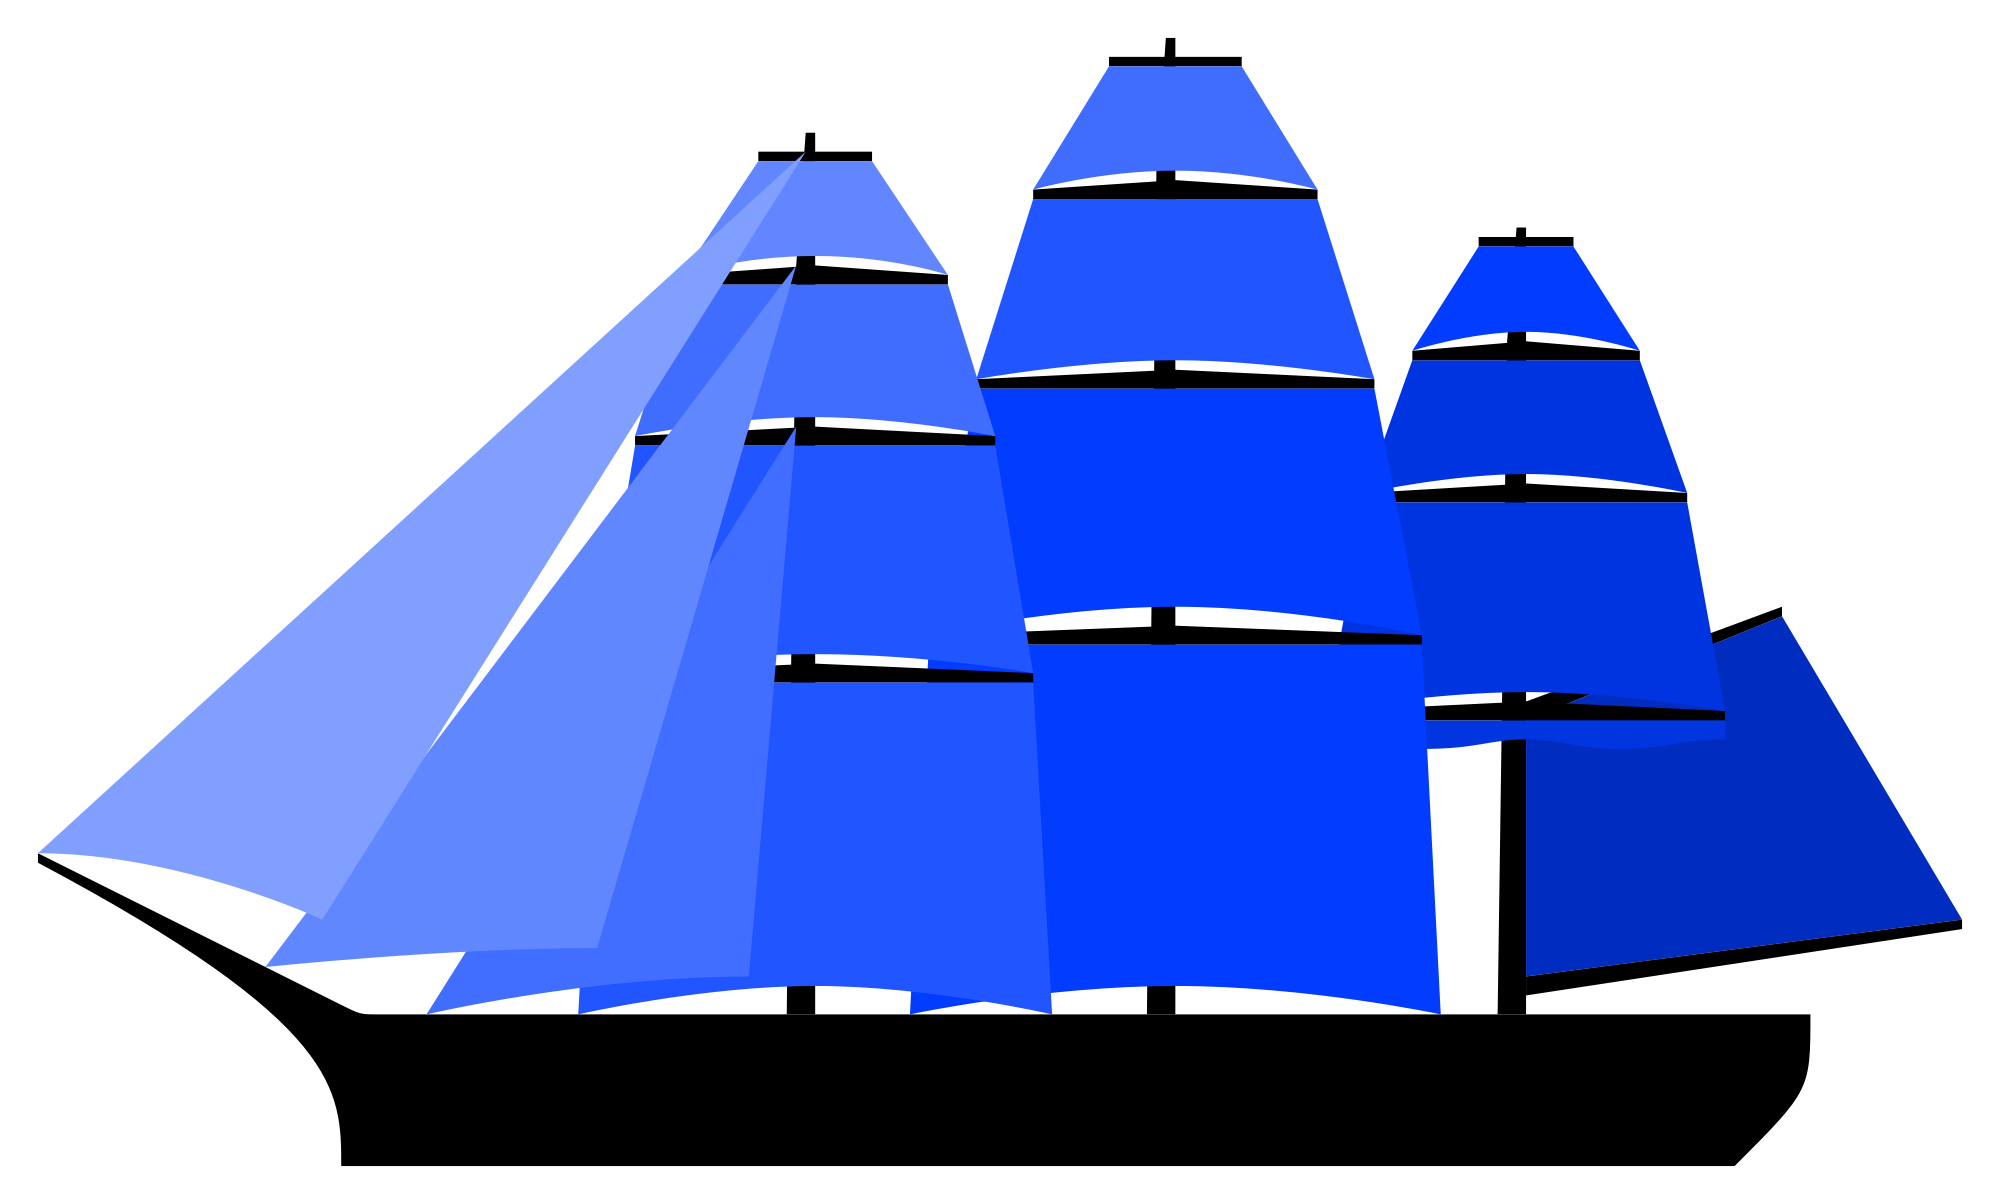 clipart freeuse Ships sail free on. Navy clipart frigate.